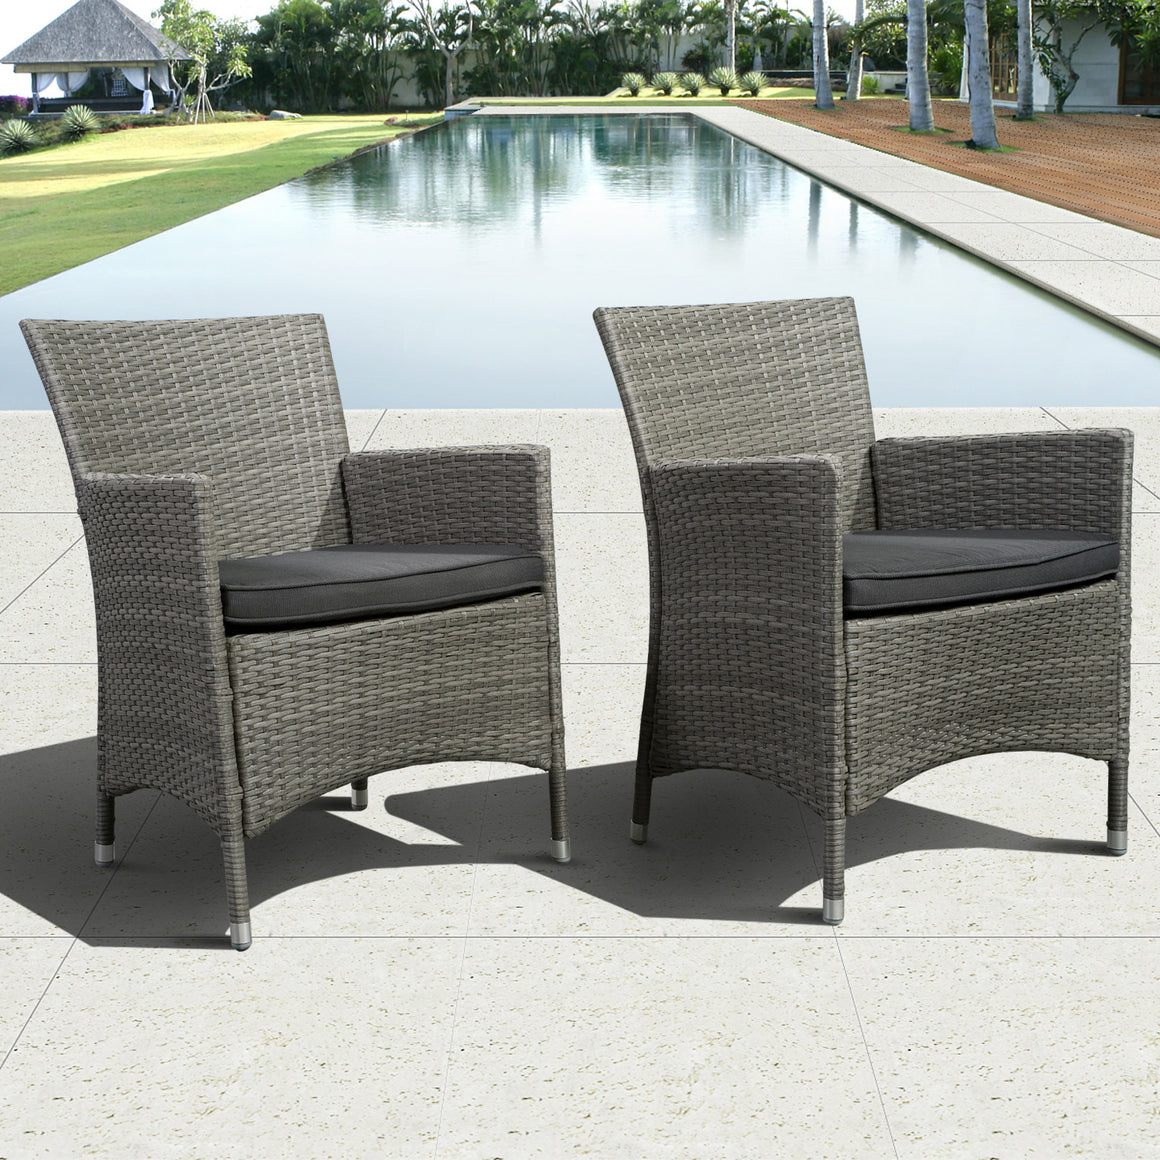 Derrick 9 Piece Teak/Wicker Rectangular Patio Dining Set with Grey Cushions , International Home Miami- grayburd